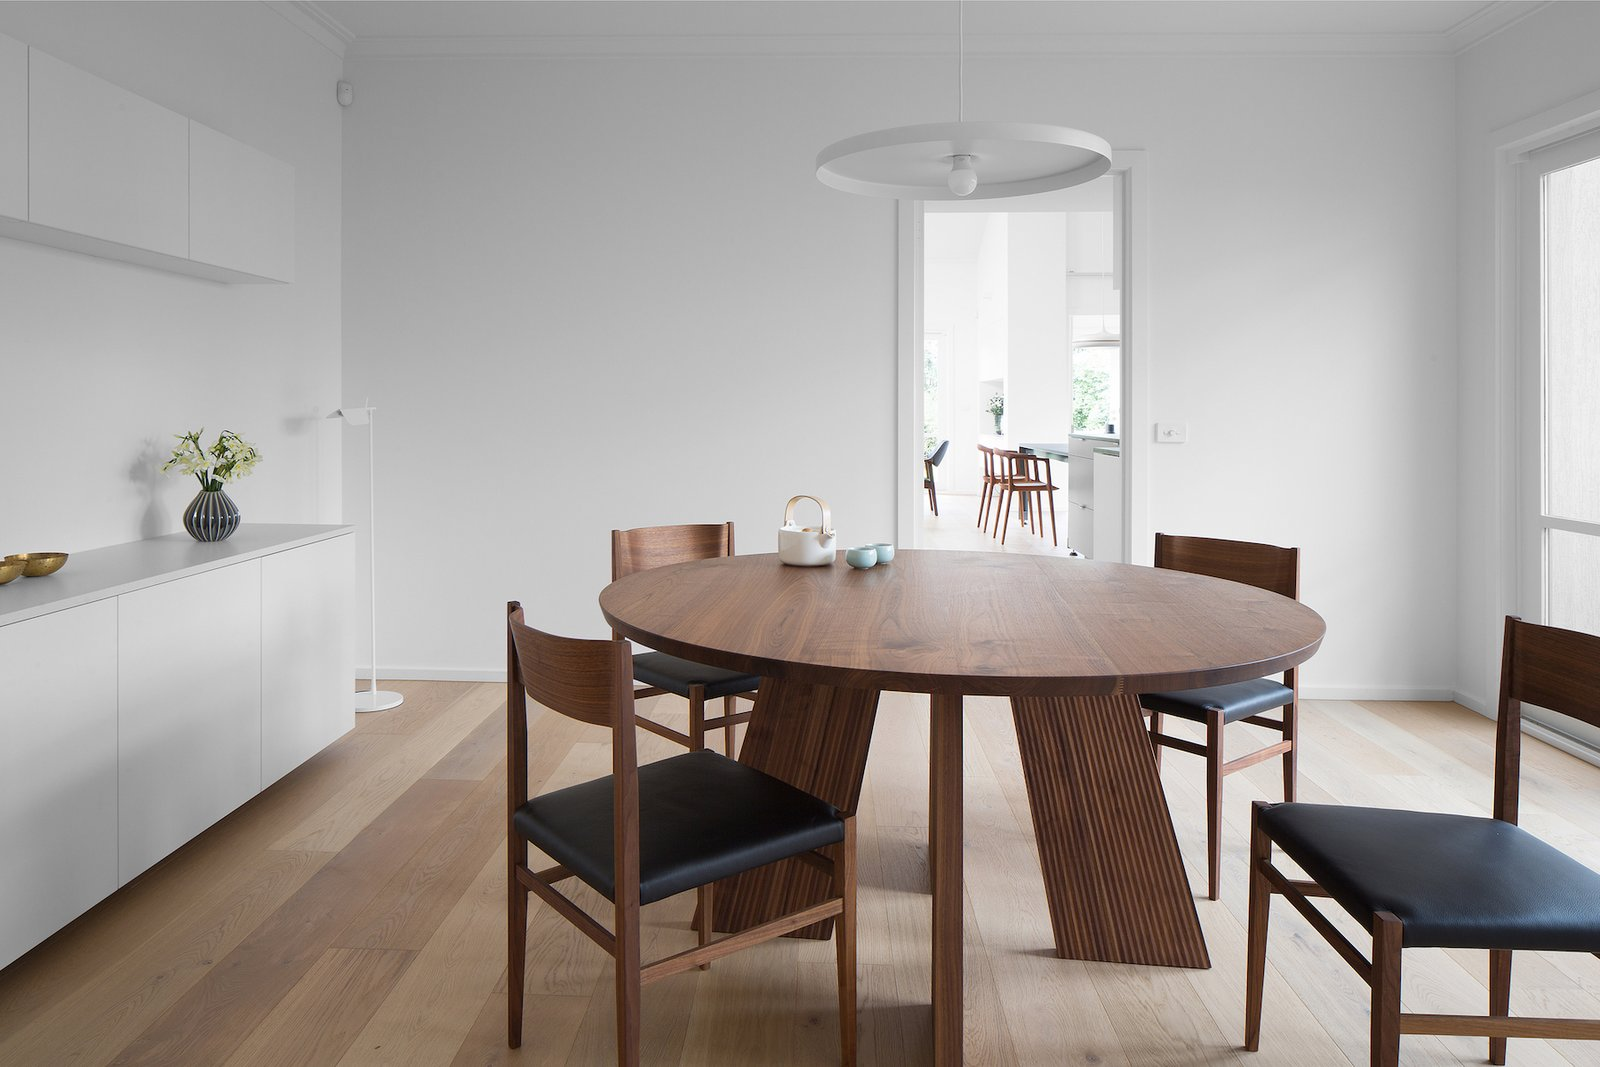 Tagged: Dining Room, Chair, Table, Pendant Lighting, and Light Hardwood Floor.  Corhampton Rd Residence by Leibal